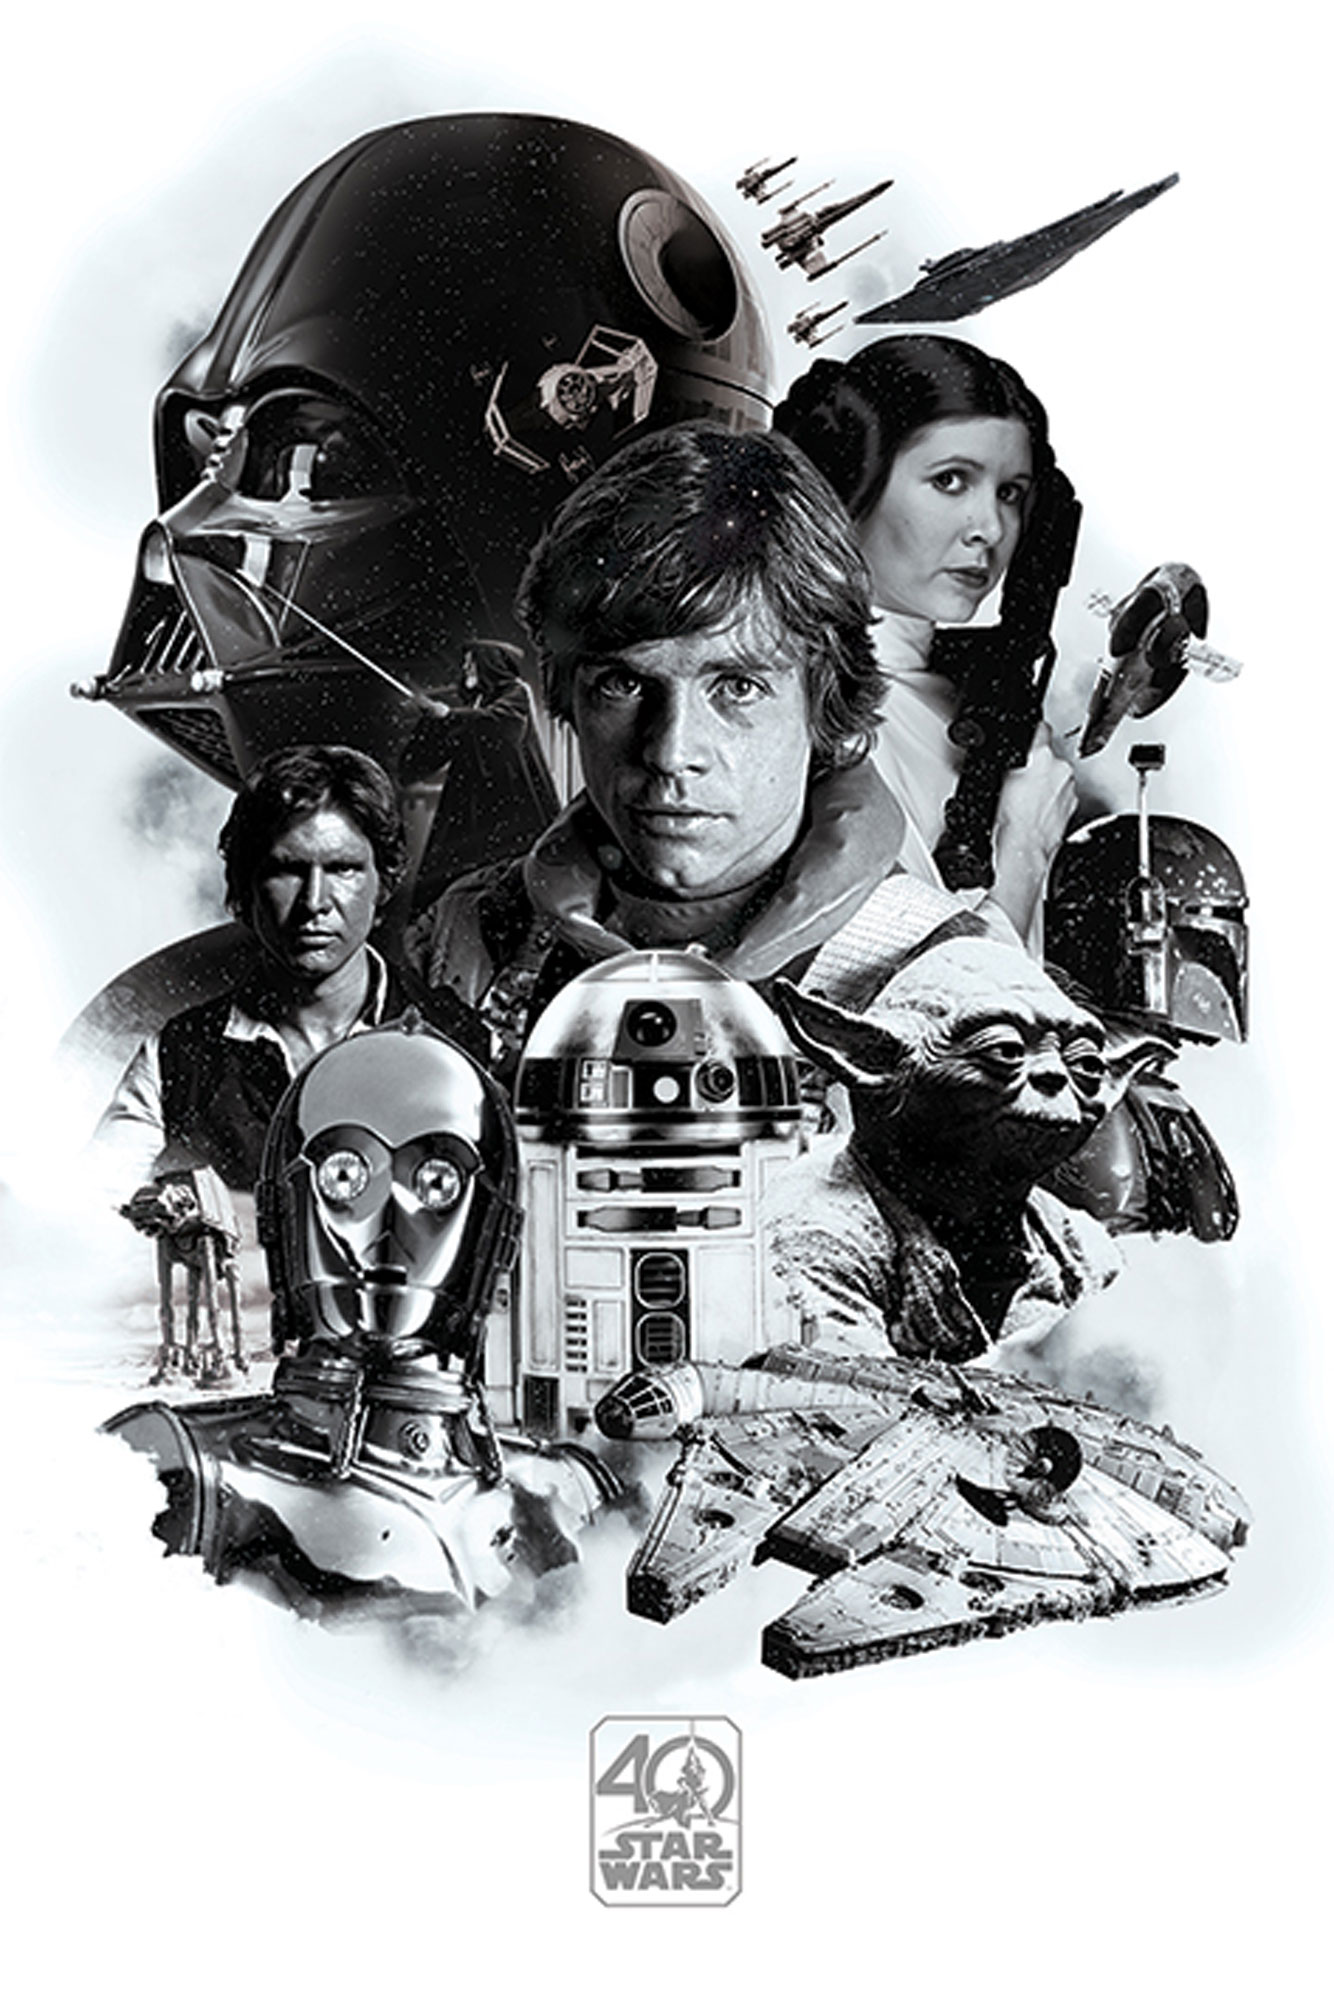 Star Wars - 40th Anniversary - Montage - Poster - 61x91,5